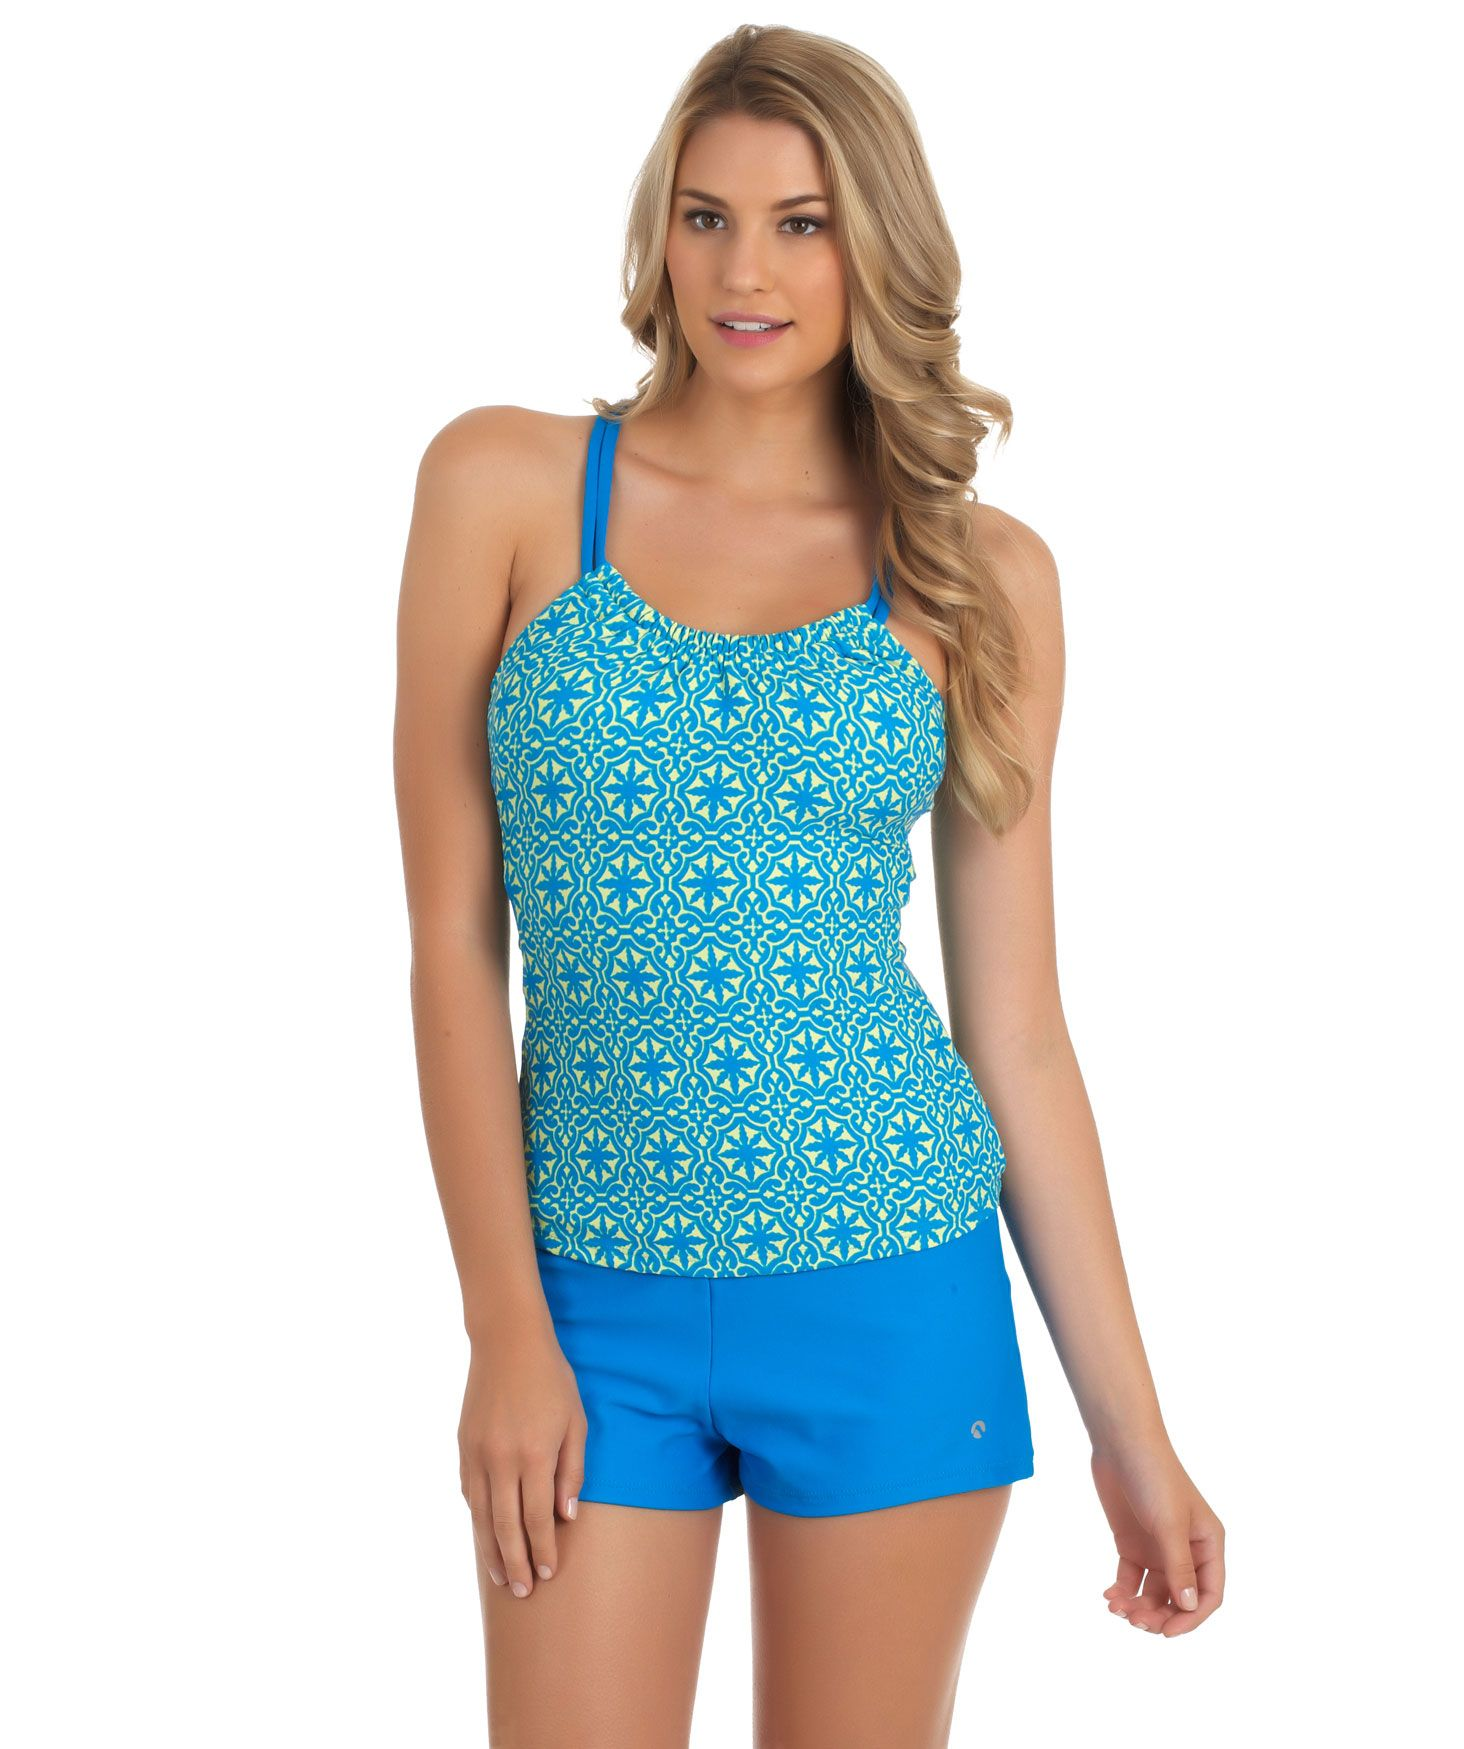 dcee4598ce 2014 Women's Tankinis | Modest Swimwear | Next Designer Swimwear - 90+ Top  Online Swimwear Stores @ www.AmericasMall.com/categories/swimwear.html # swimwear ...